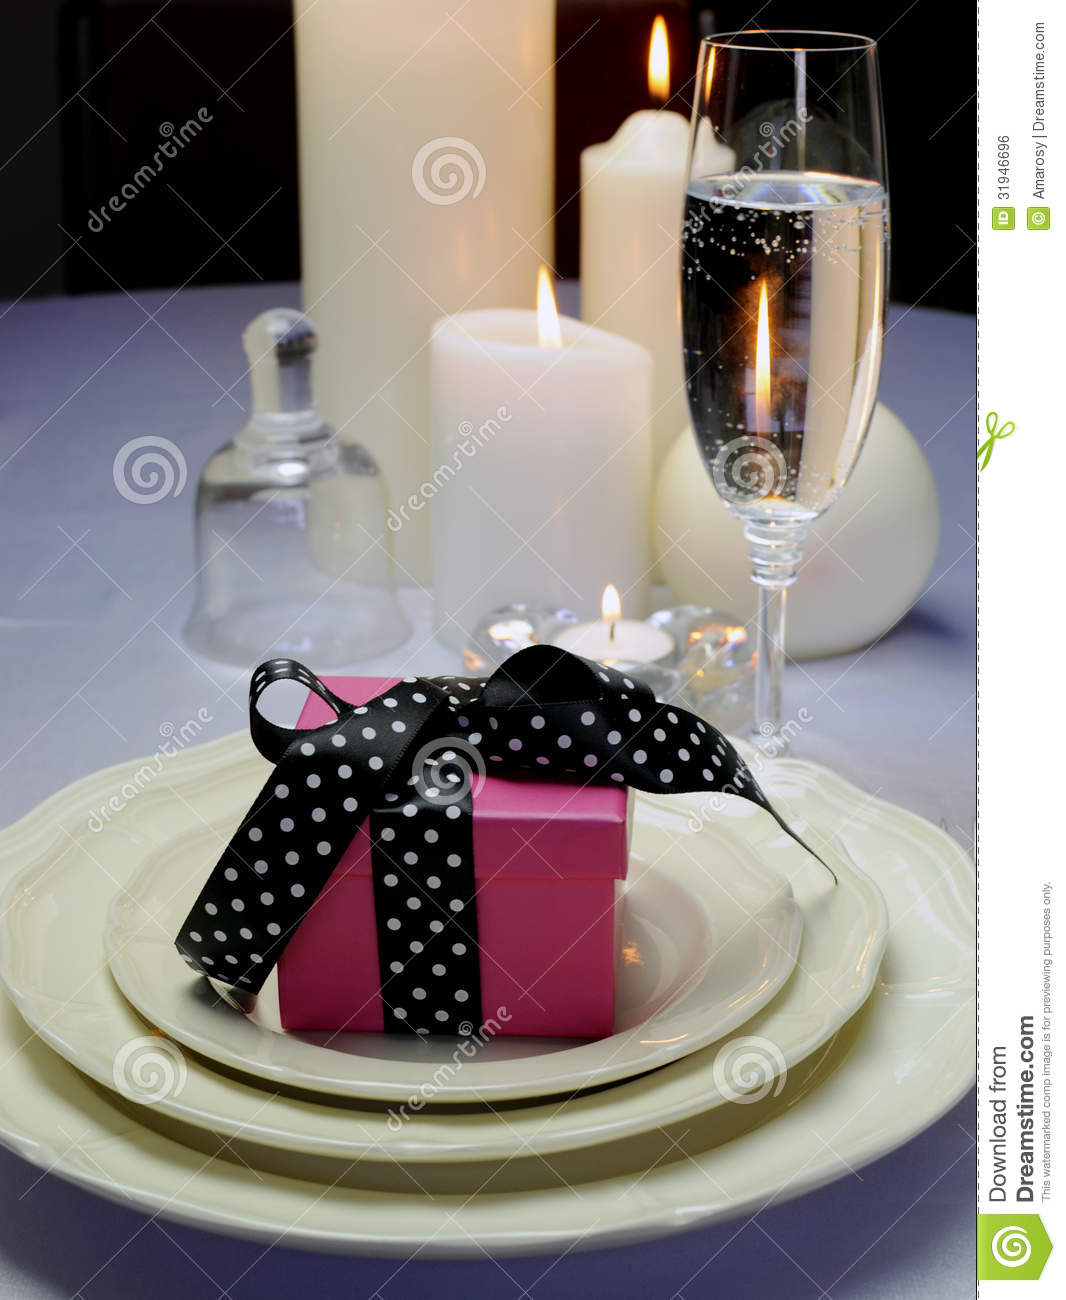 Wedding Breakfast Dining Table Setting With Pink Present  : wedding breakfast dining table setting pink present gift close up detail black polka dot ribbon fina china 31946696 from dreamstime.com size 1066 x 1300 jpeg 122kB